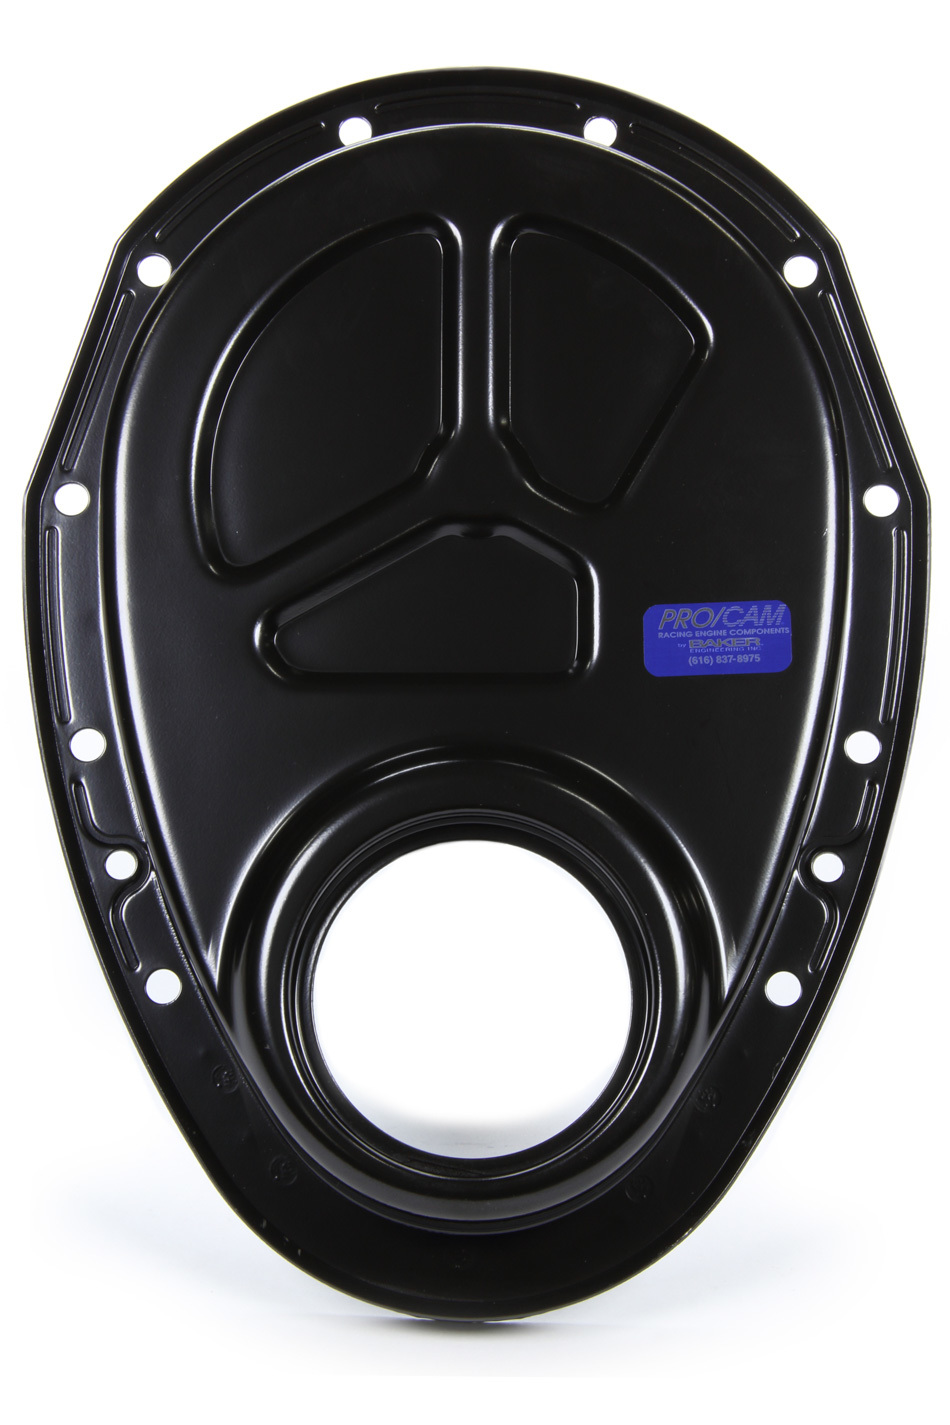 Pro Cam 9503 Timing Cover, 1 Piece, Steel, Black Paint, Big Block Snout, Small Block Chevy, Each